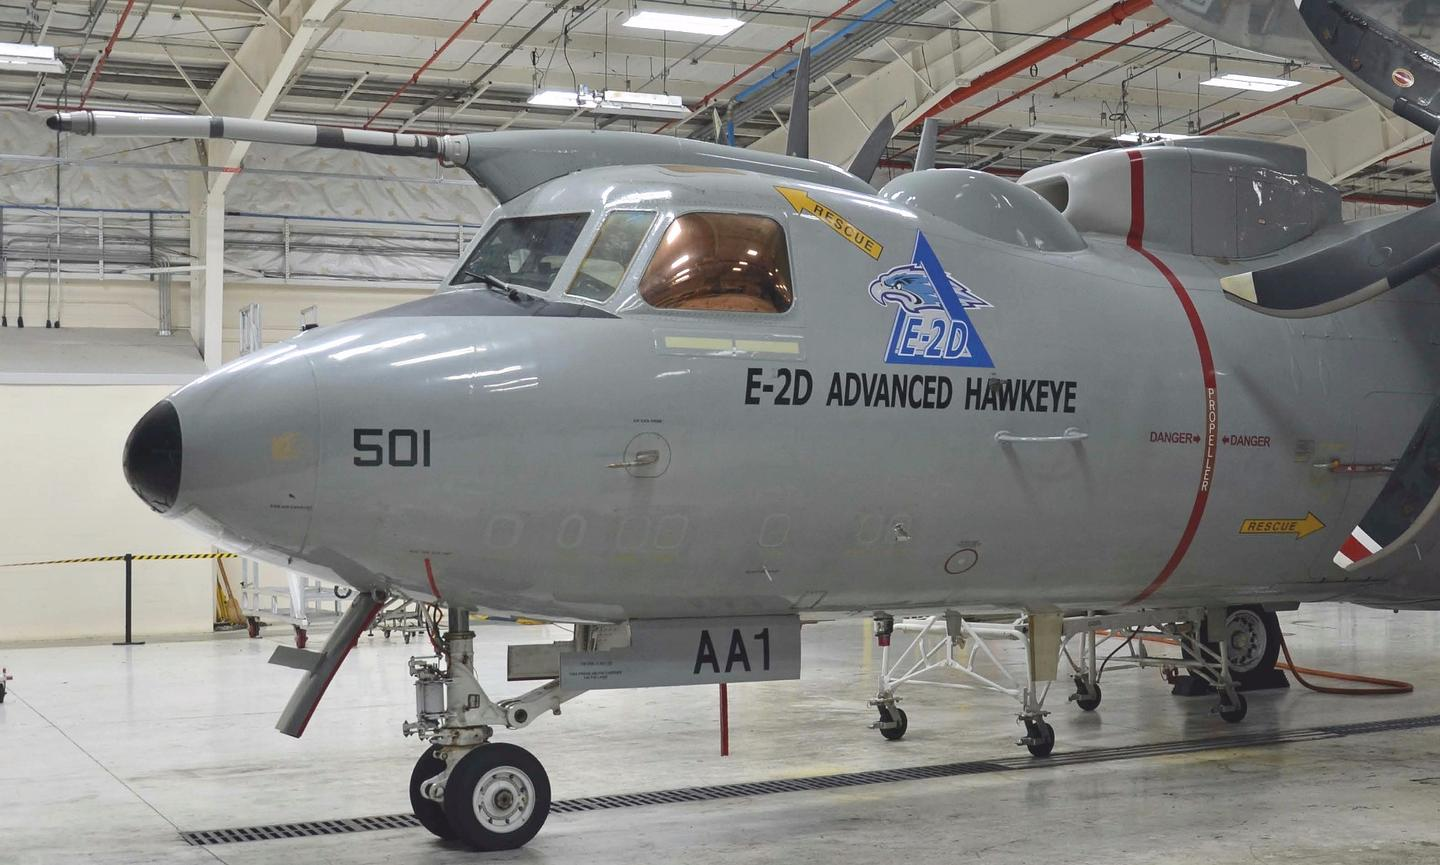 The first US Navy E-2D Advanced Hawkeye equipped with aerial refueling